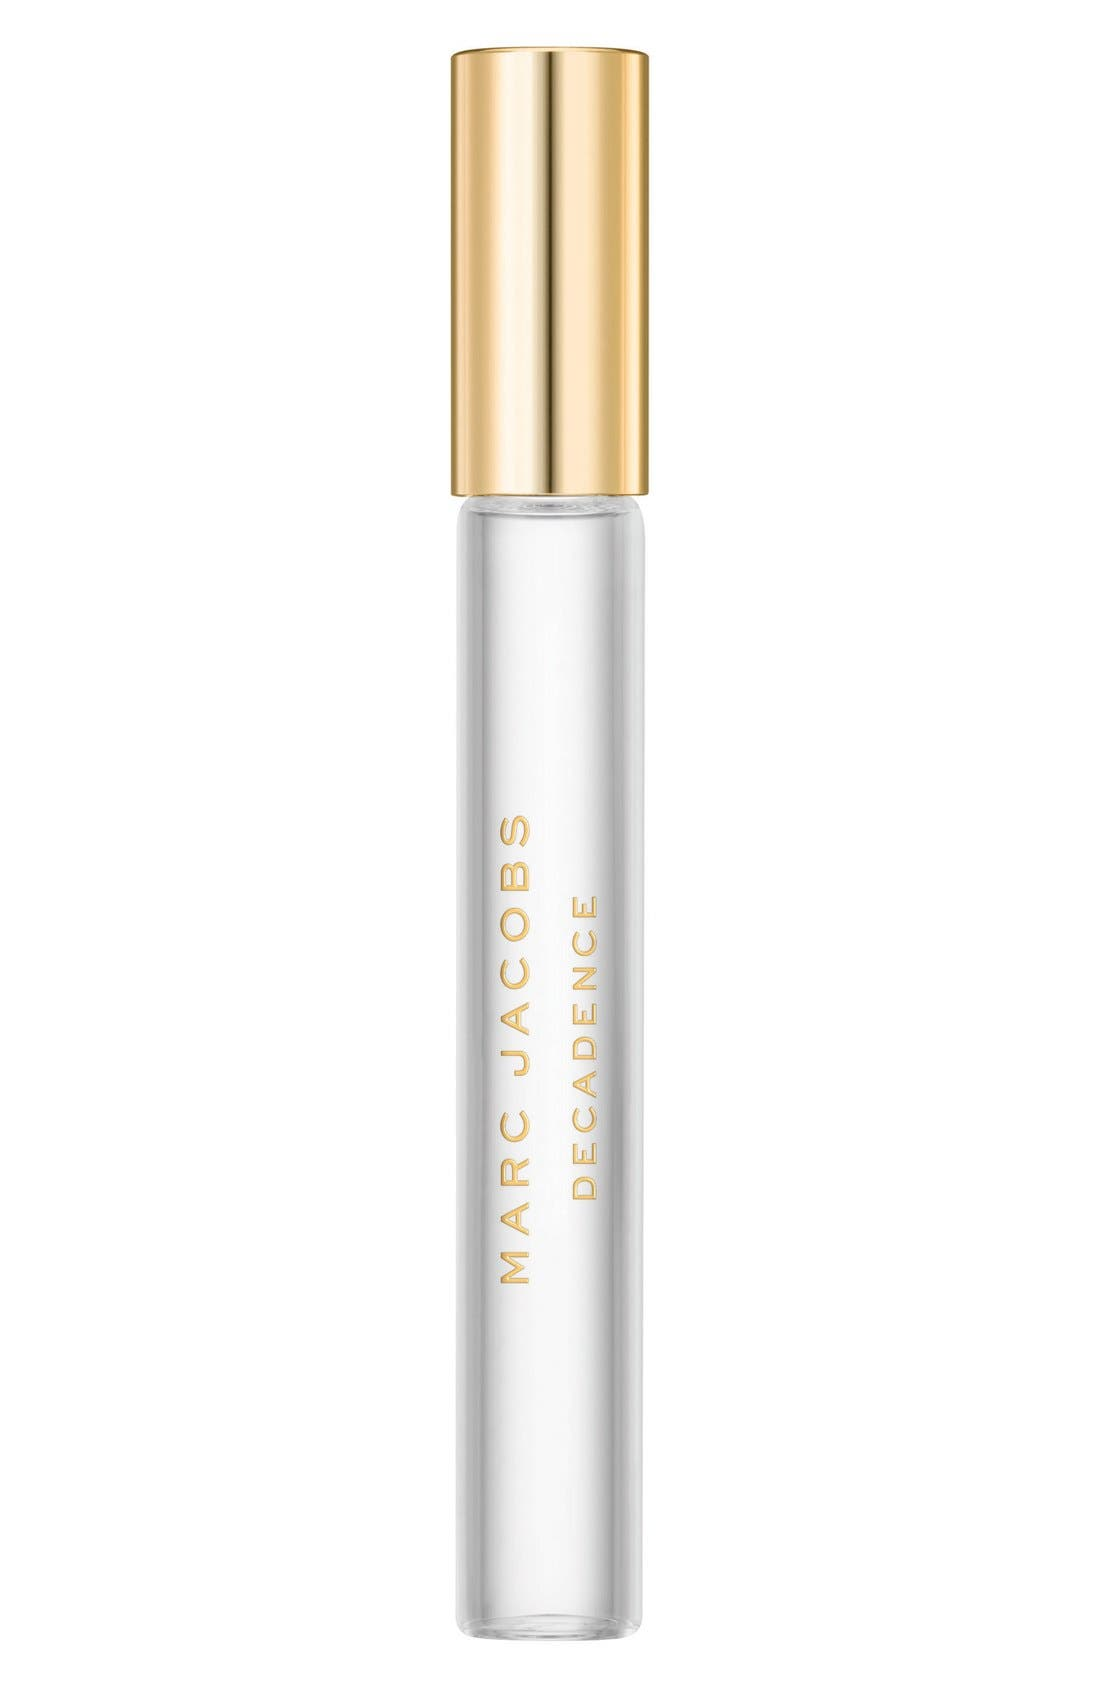 'Decadence' Eau de Parfum Rollerball,                         Main,                         color, 000